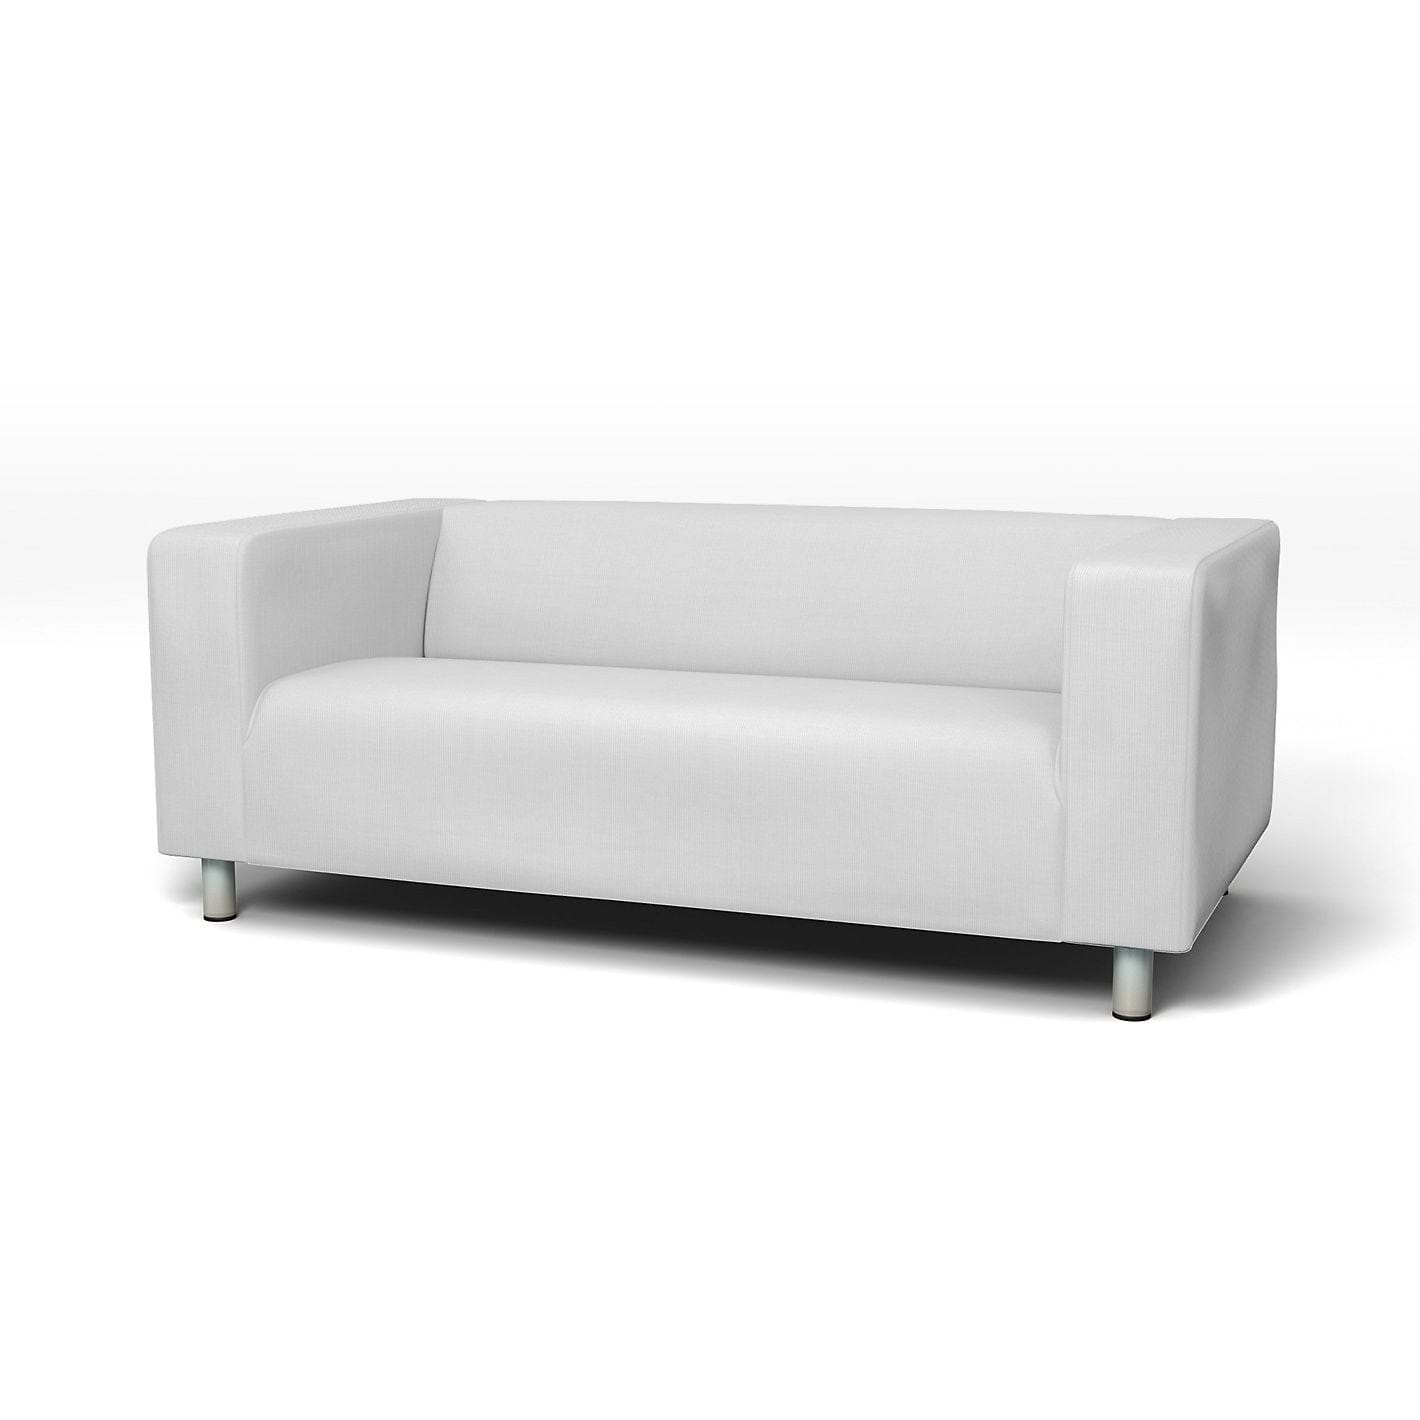 Peachy Replacement Ikea Klippan Sofa Covers Couch Covers Bemz Bemz Gmtry Best Dining Table And Chair Ideas Images Gmtryco